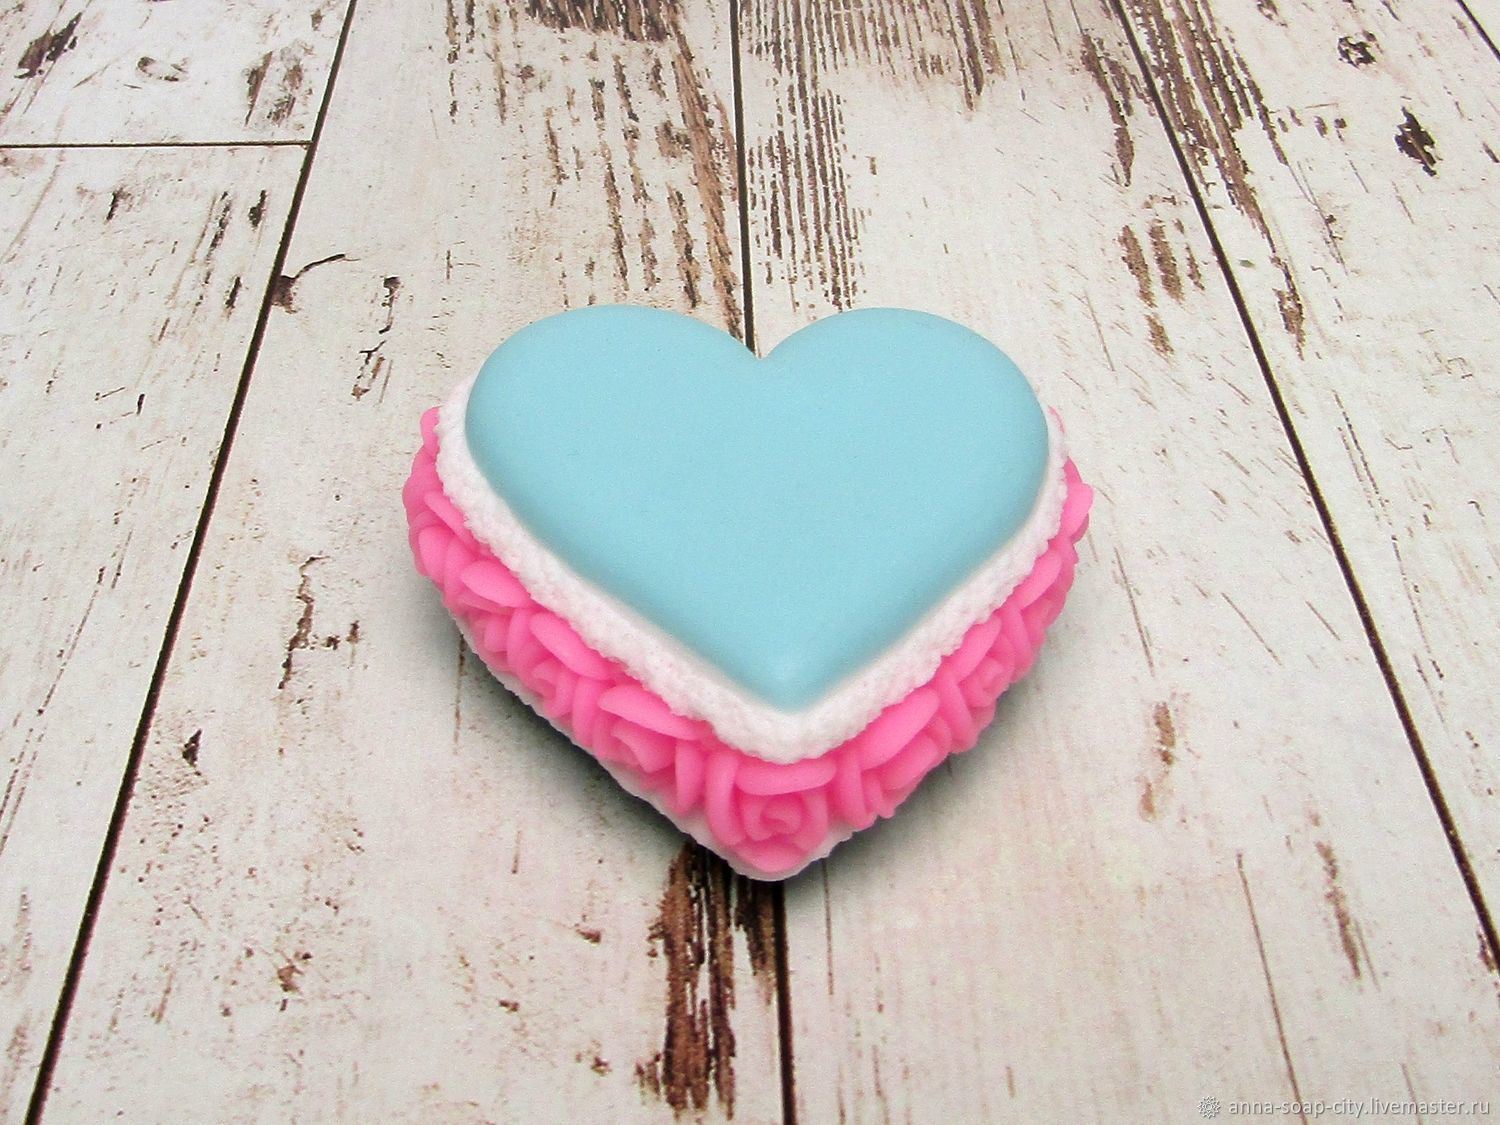 Silicone mold for soap and candles ' Macaroon HEART', Form, Arkhangelsk,  Фото №1